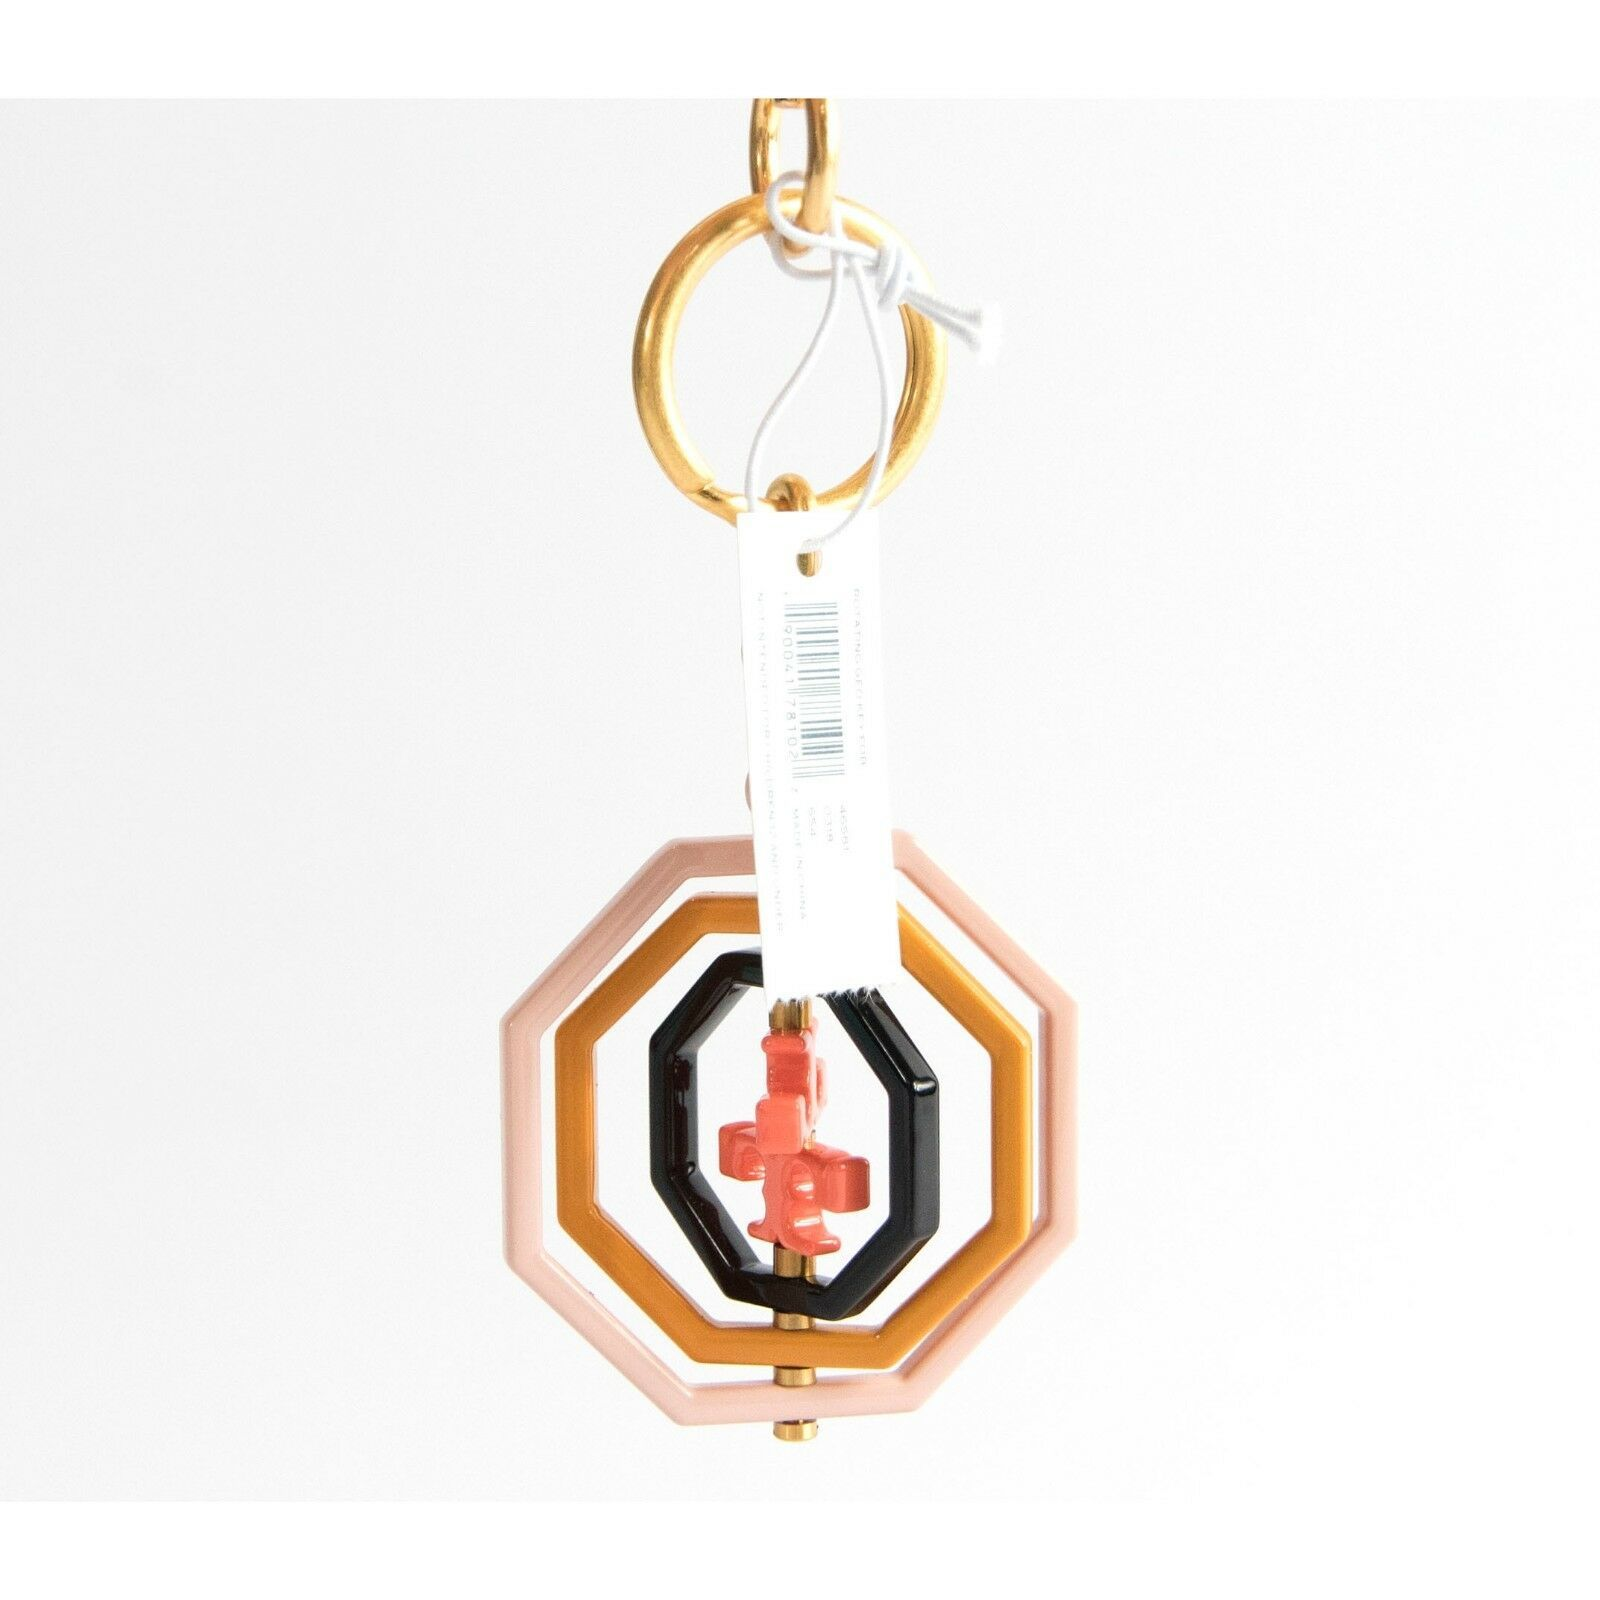 Tory Burch Octagon Acrylic Enamel Spinning Large Bag Charm Key Chain NWT image 4